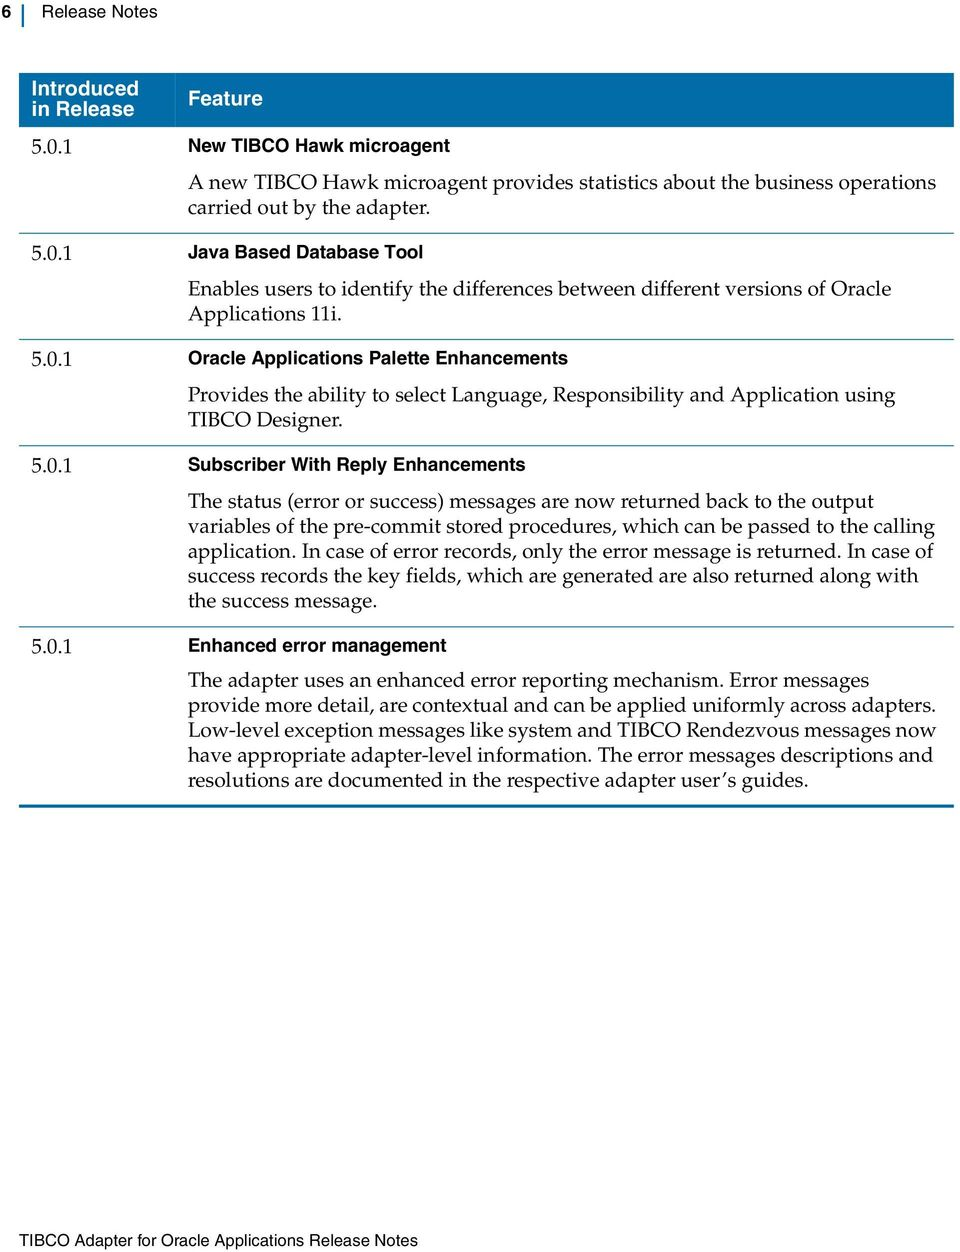 TIBCO Adapter for Oracle Applications Release Notes